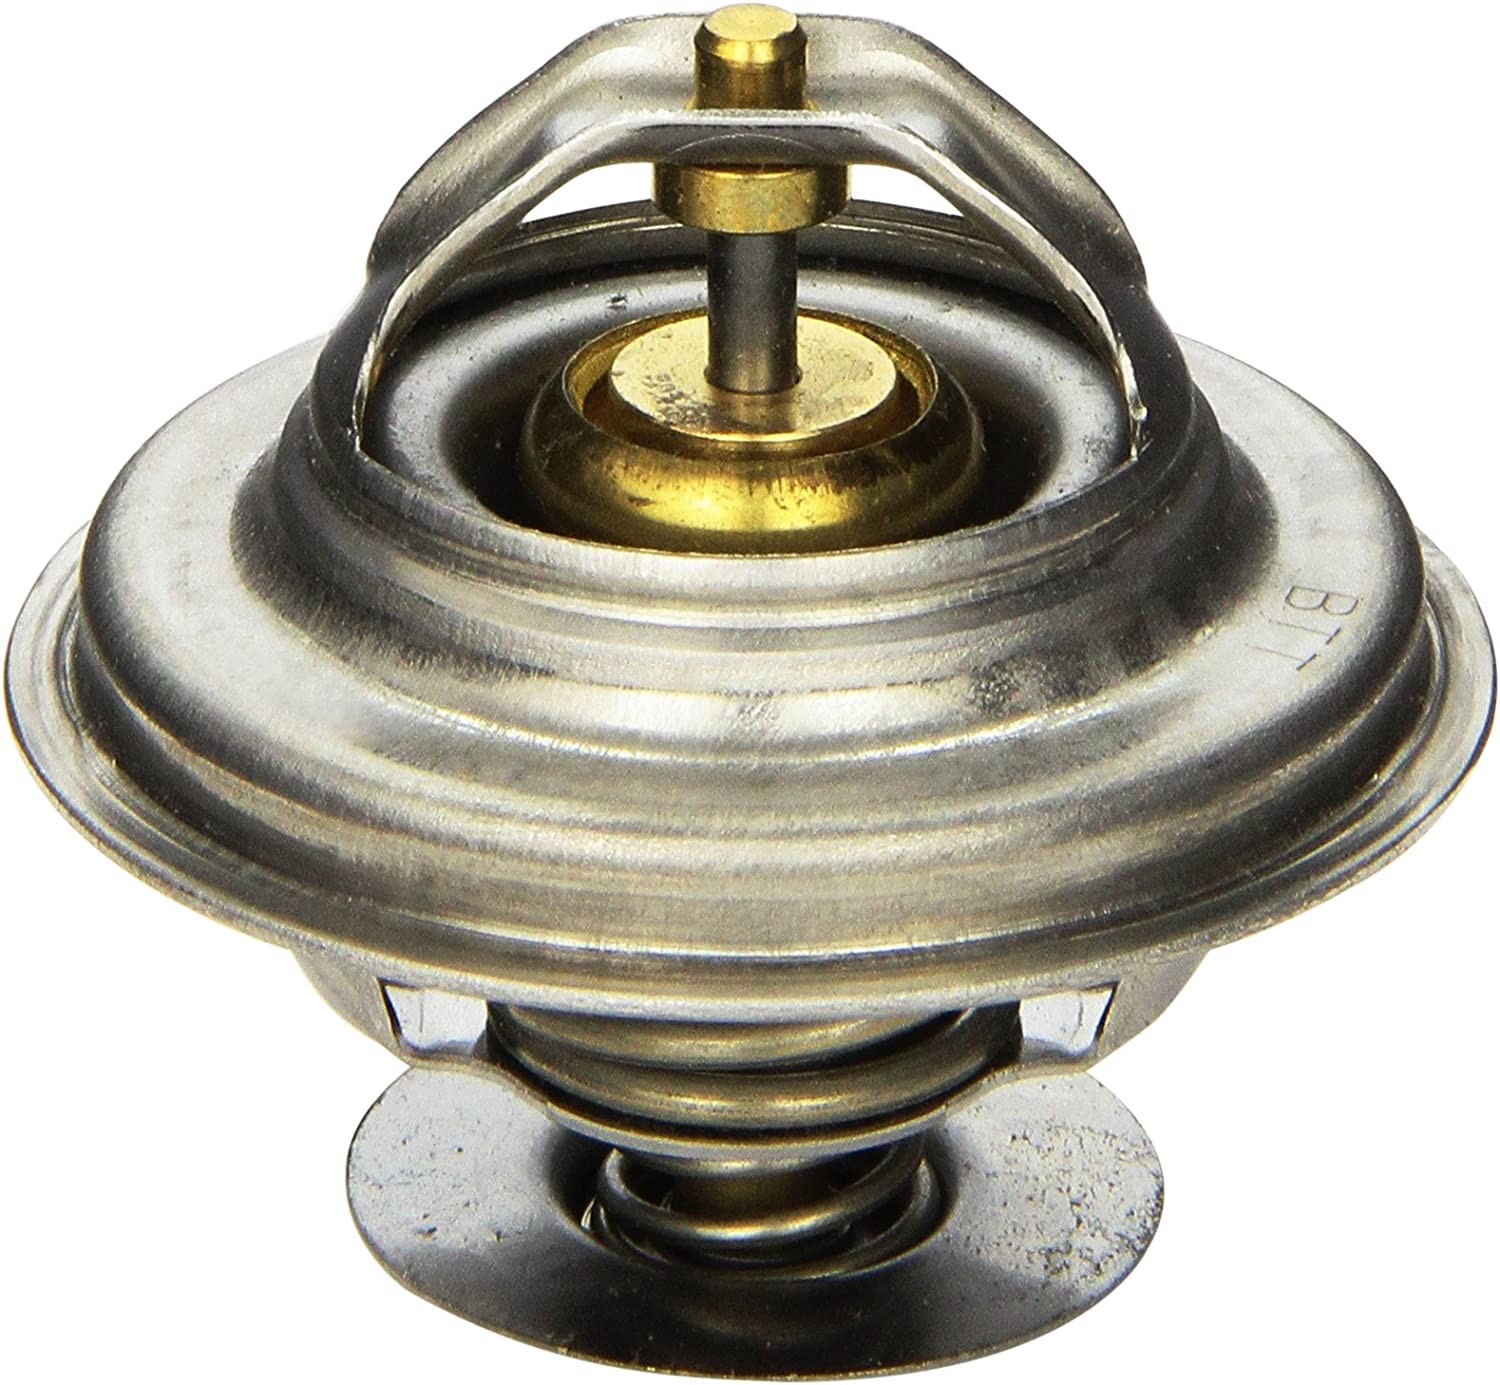 Japan Maker New HELLA 2.097.80.312 Thermostat All stores are sold with Gasket Insert